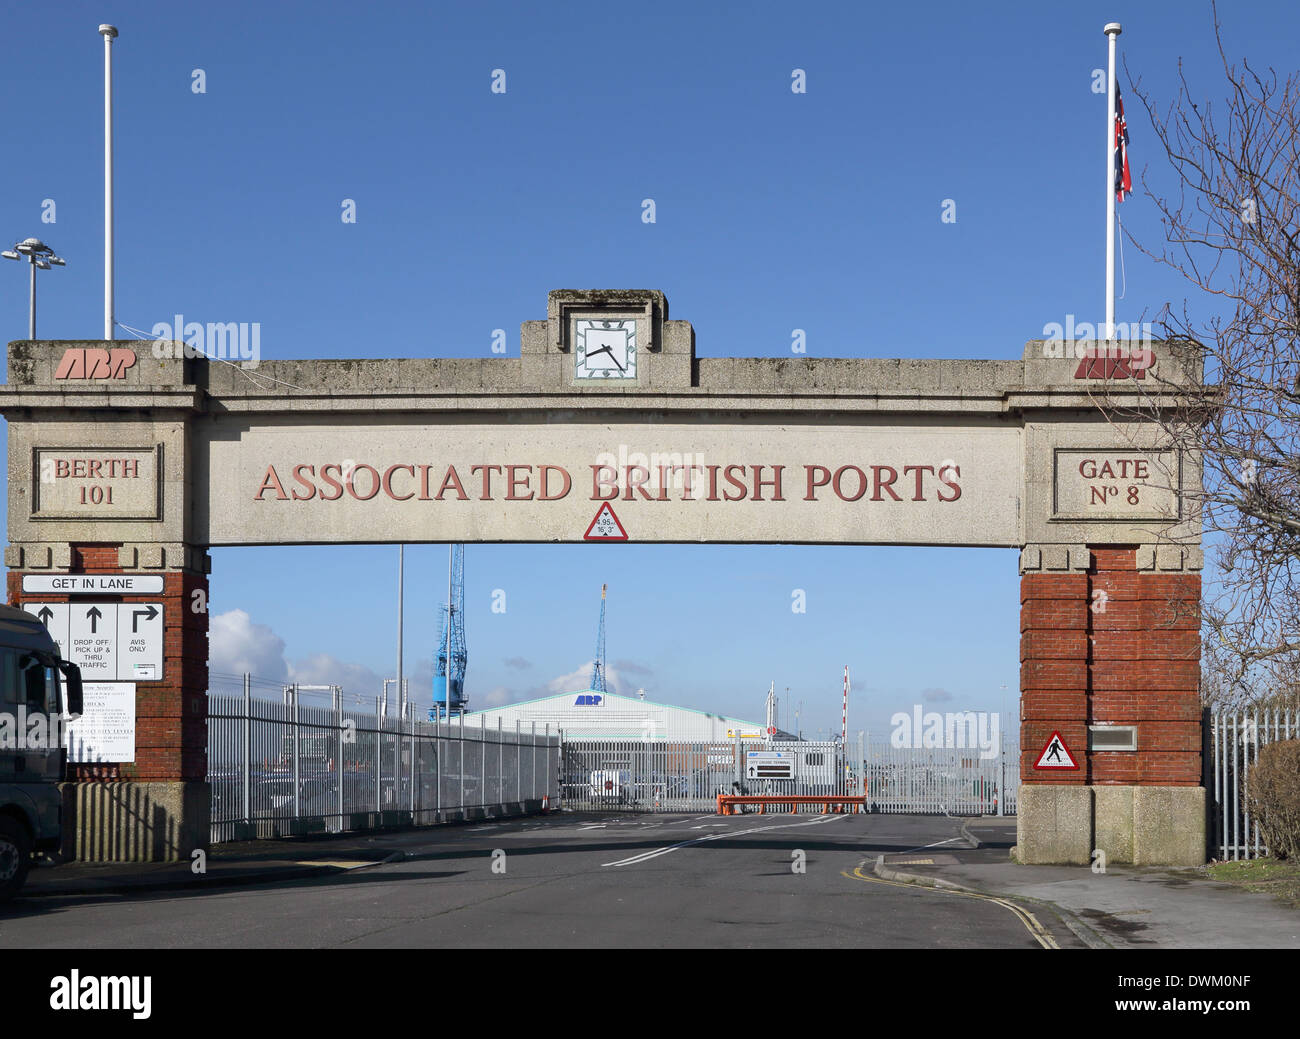 the city and port of southampton on the south coast of England. The old ABP port entrance - Stock Image